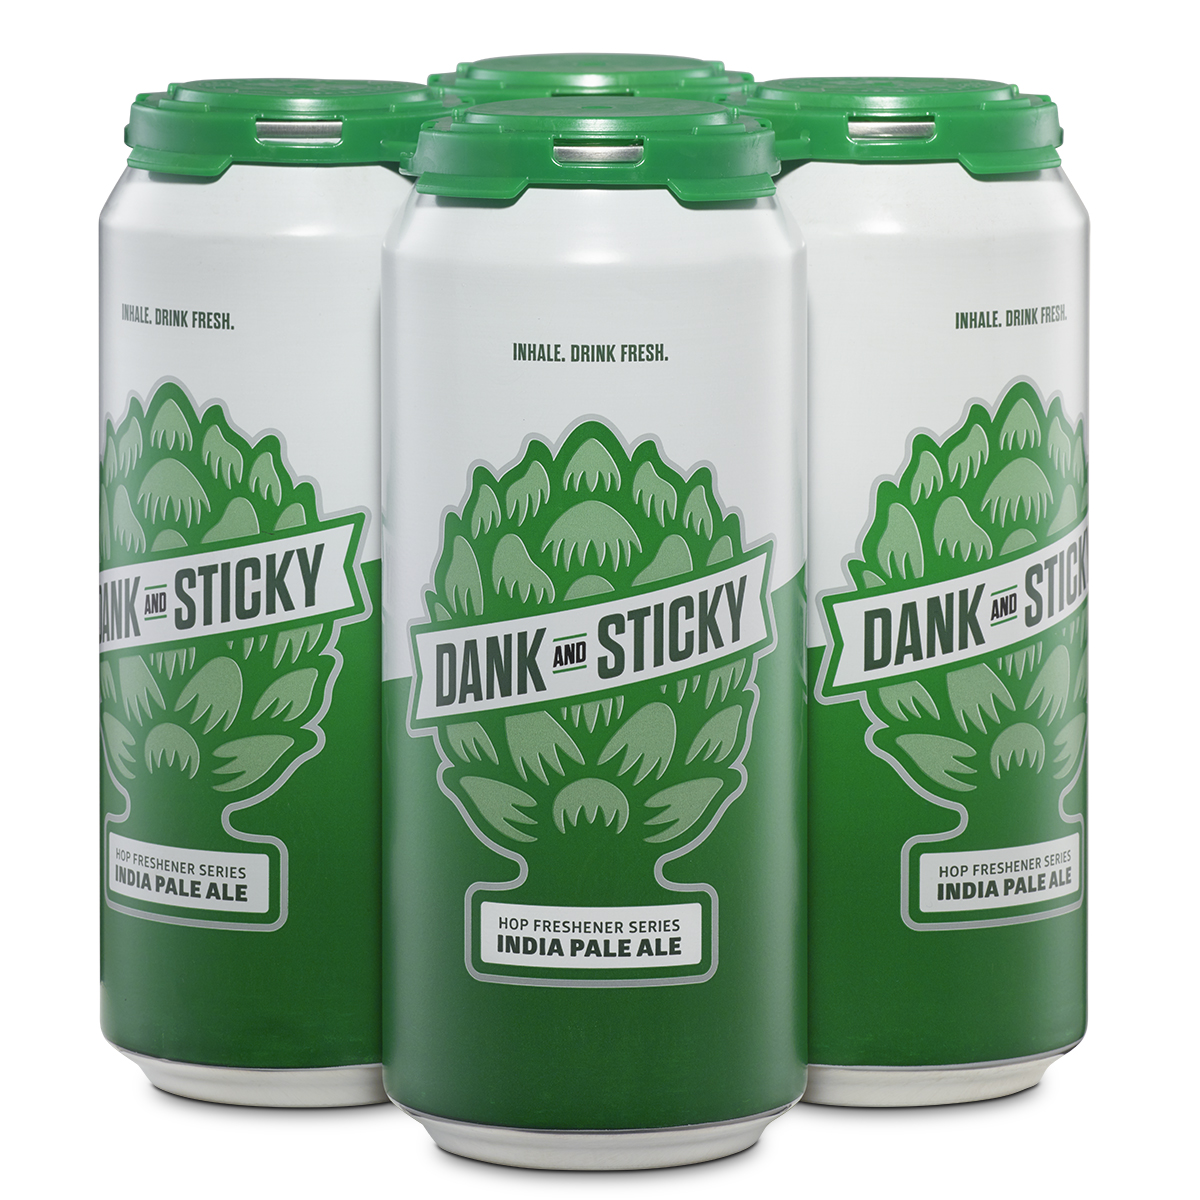 Dank and Sticky IPA - Four-Pack MAIN